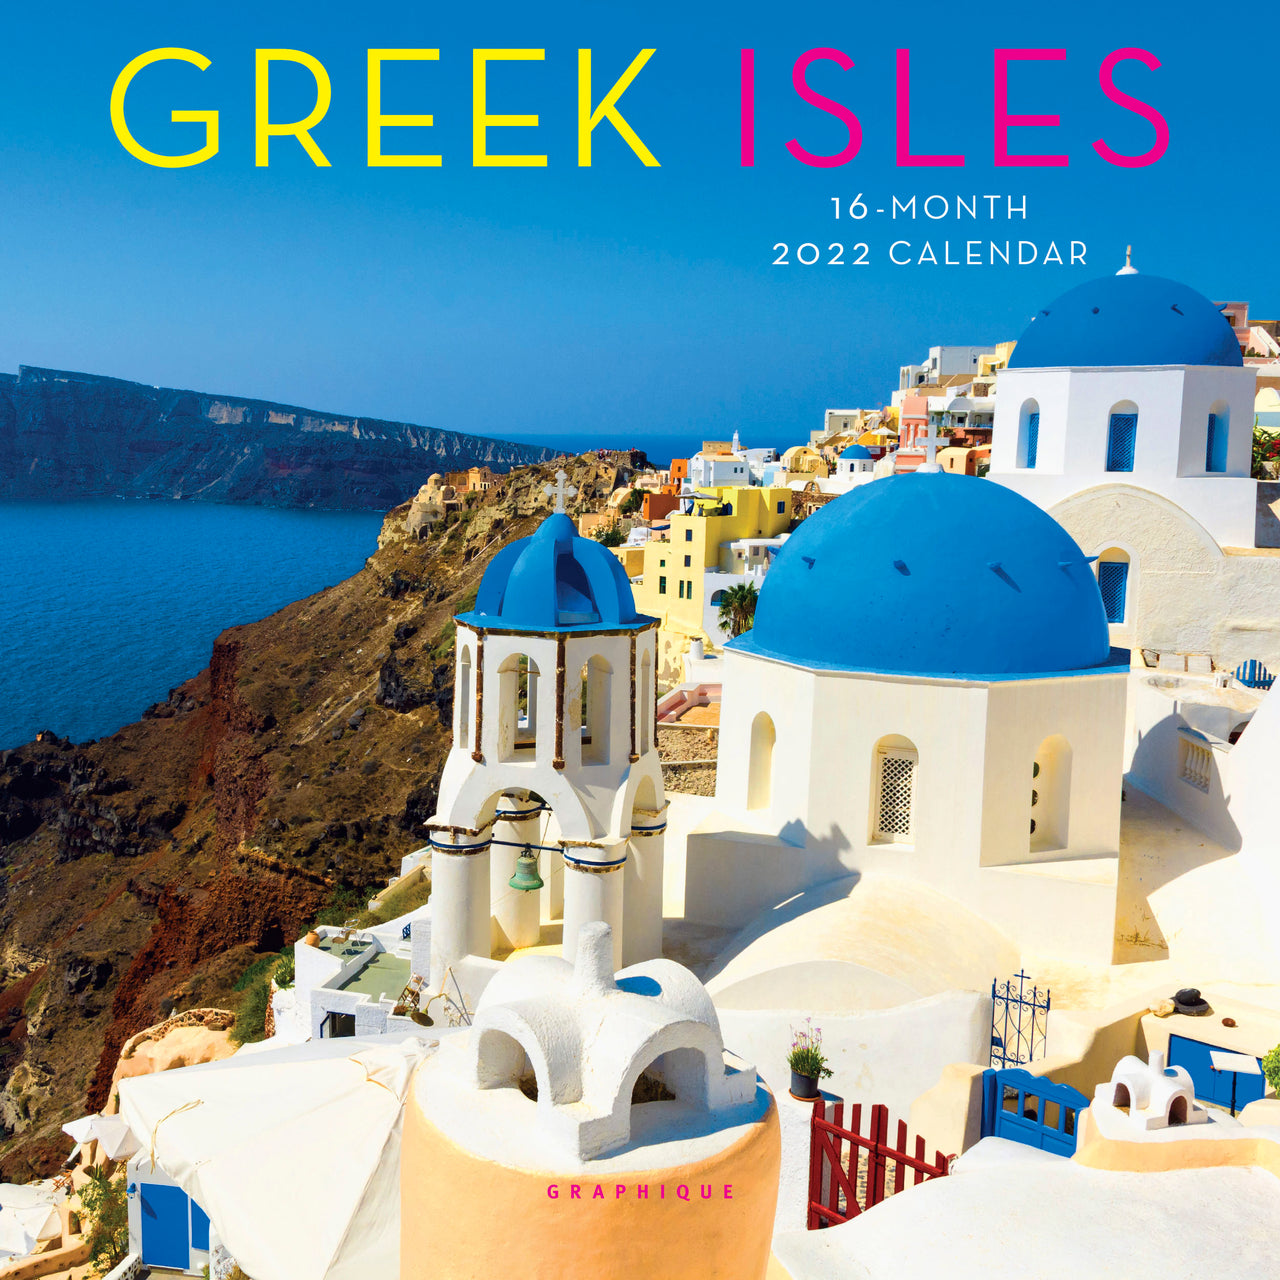 Greek Isles 7x7 Mini Calendar